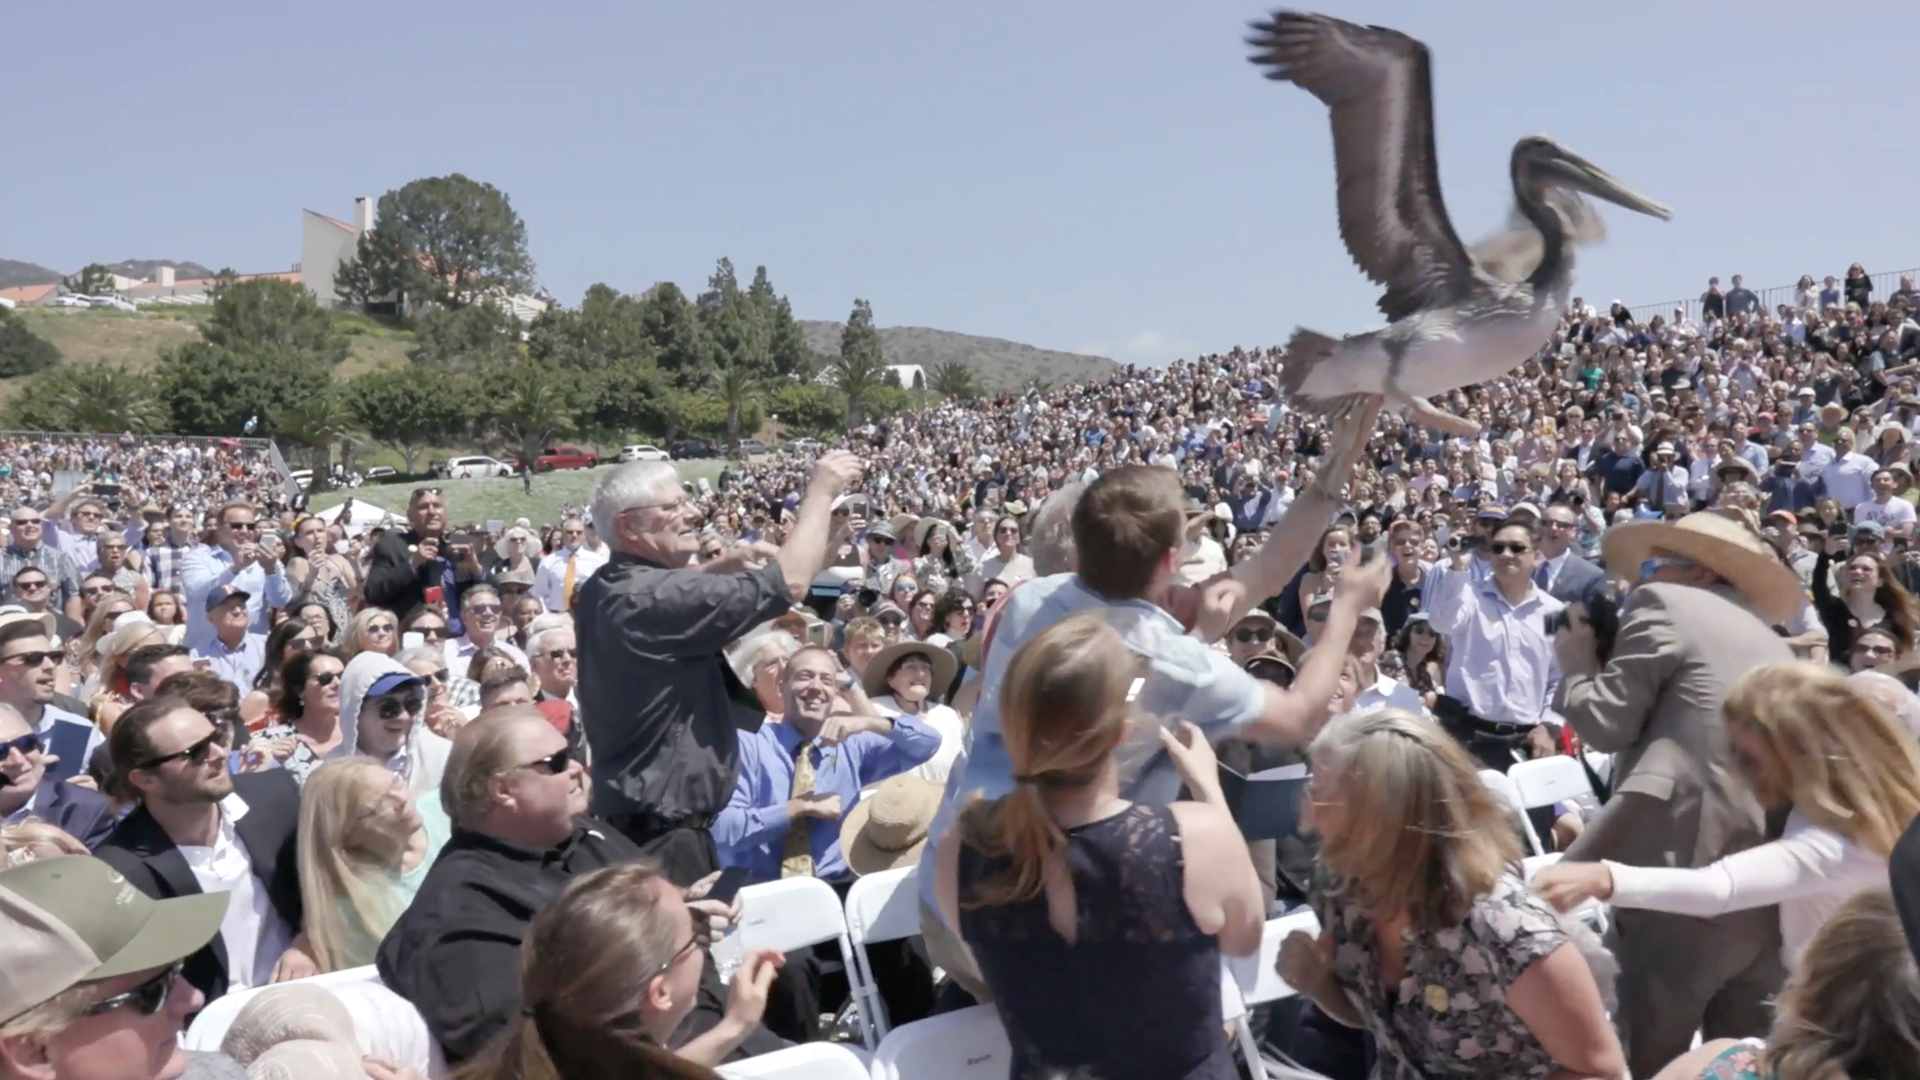 Uninvited Guests: Pelicans Crash University Graduation Ceremony